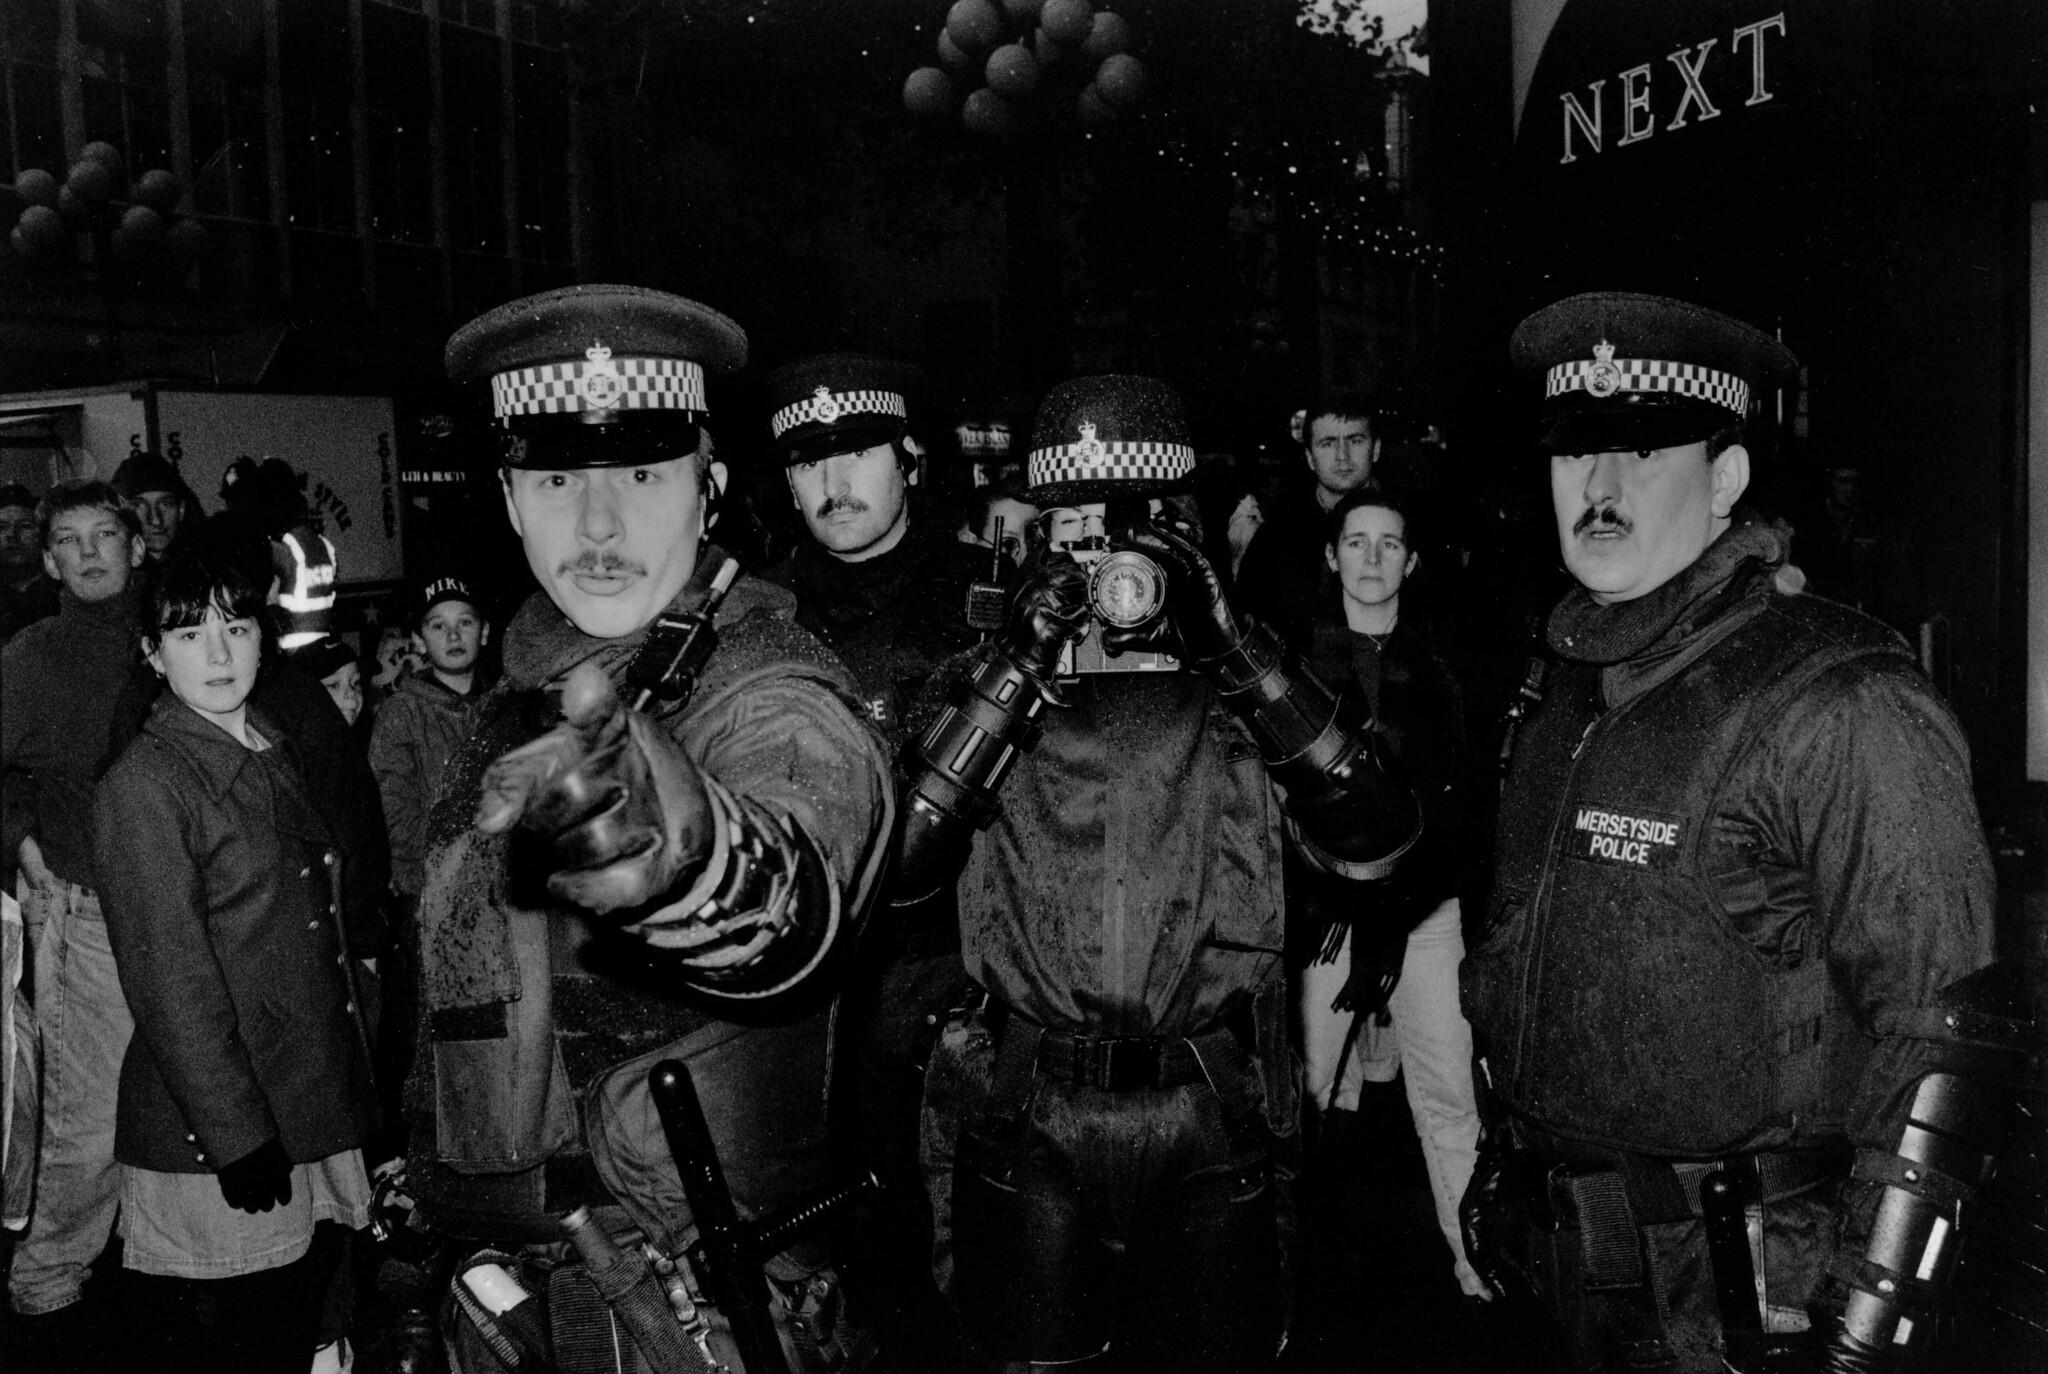 Coppers at a protest against Argos in support of Dockers.